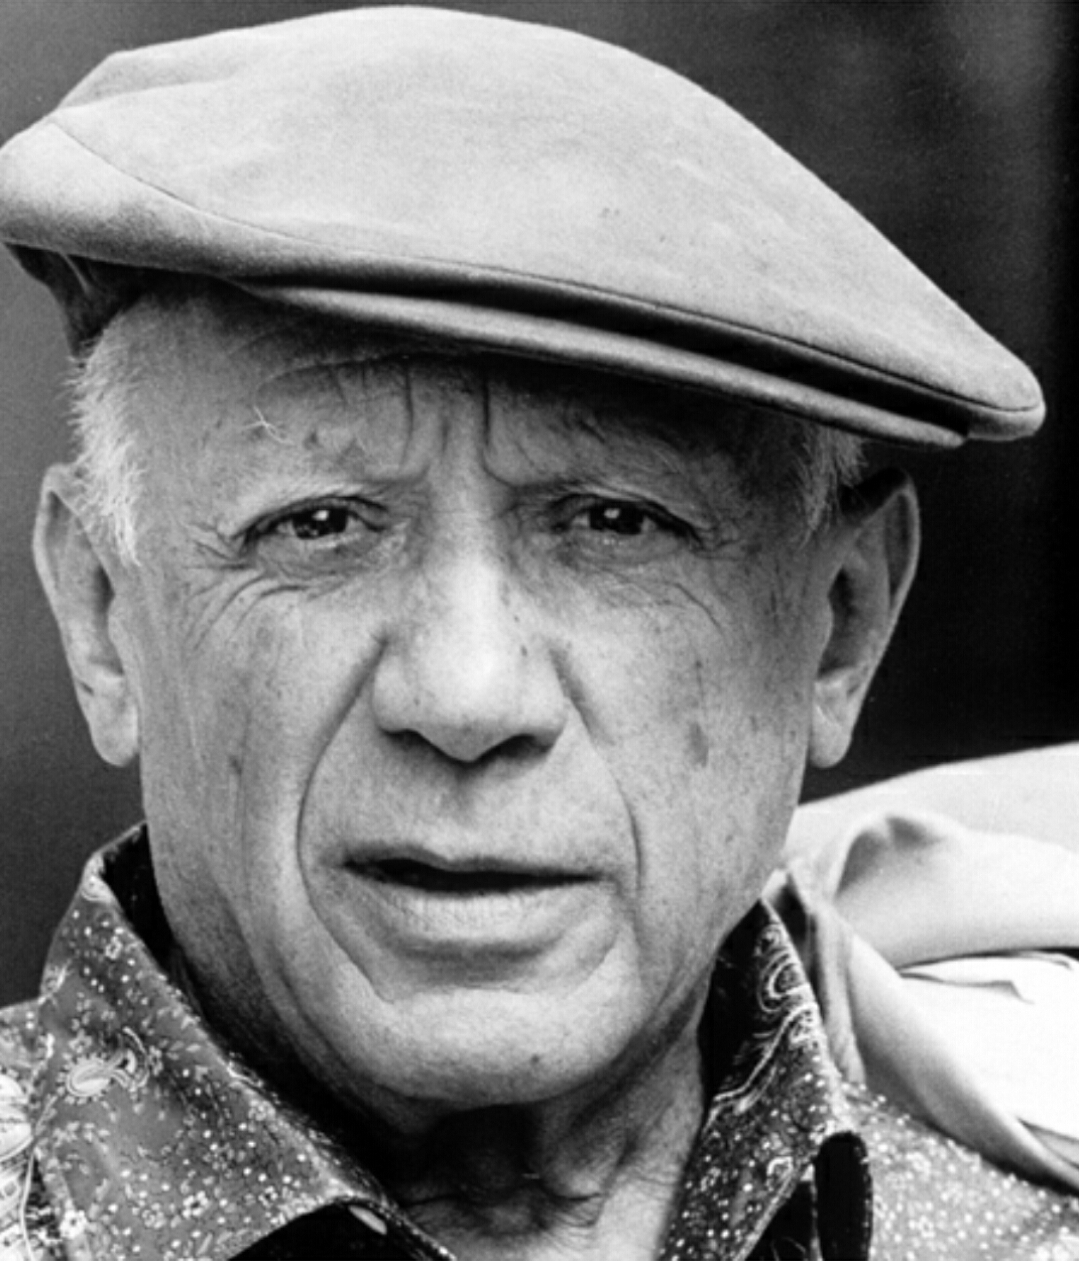 Retrach de Pablo Picasso